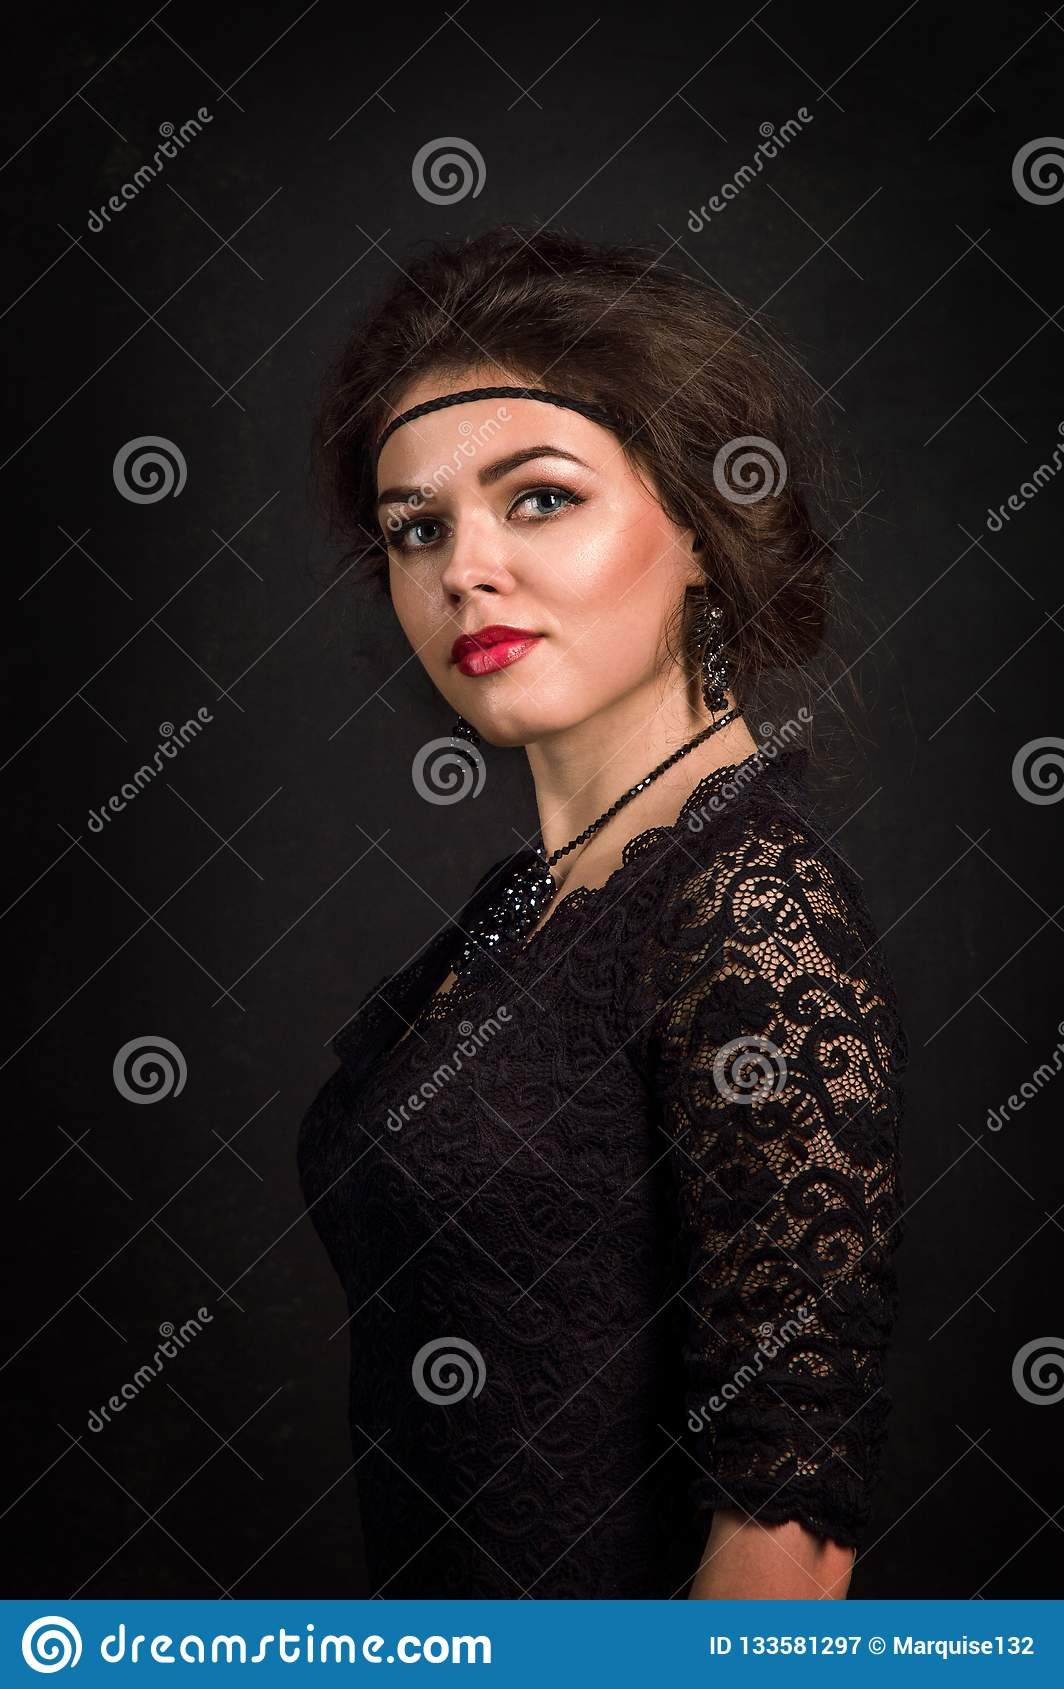 Roaring Twenties. Woman portrait in the style of Gatsby. Low key. Beautiful young woman in a black lace dress romantic looks.